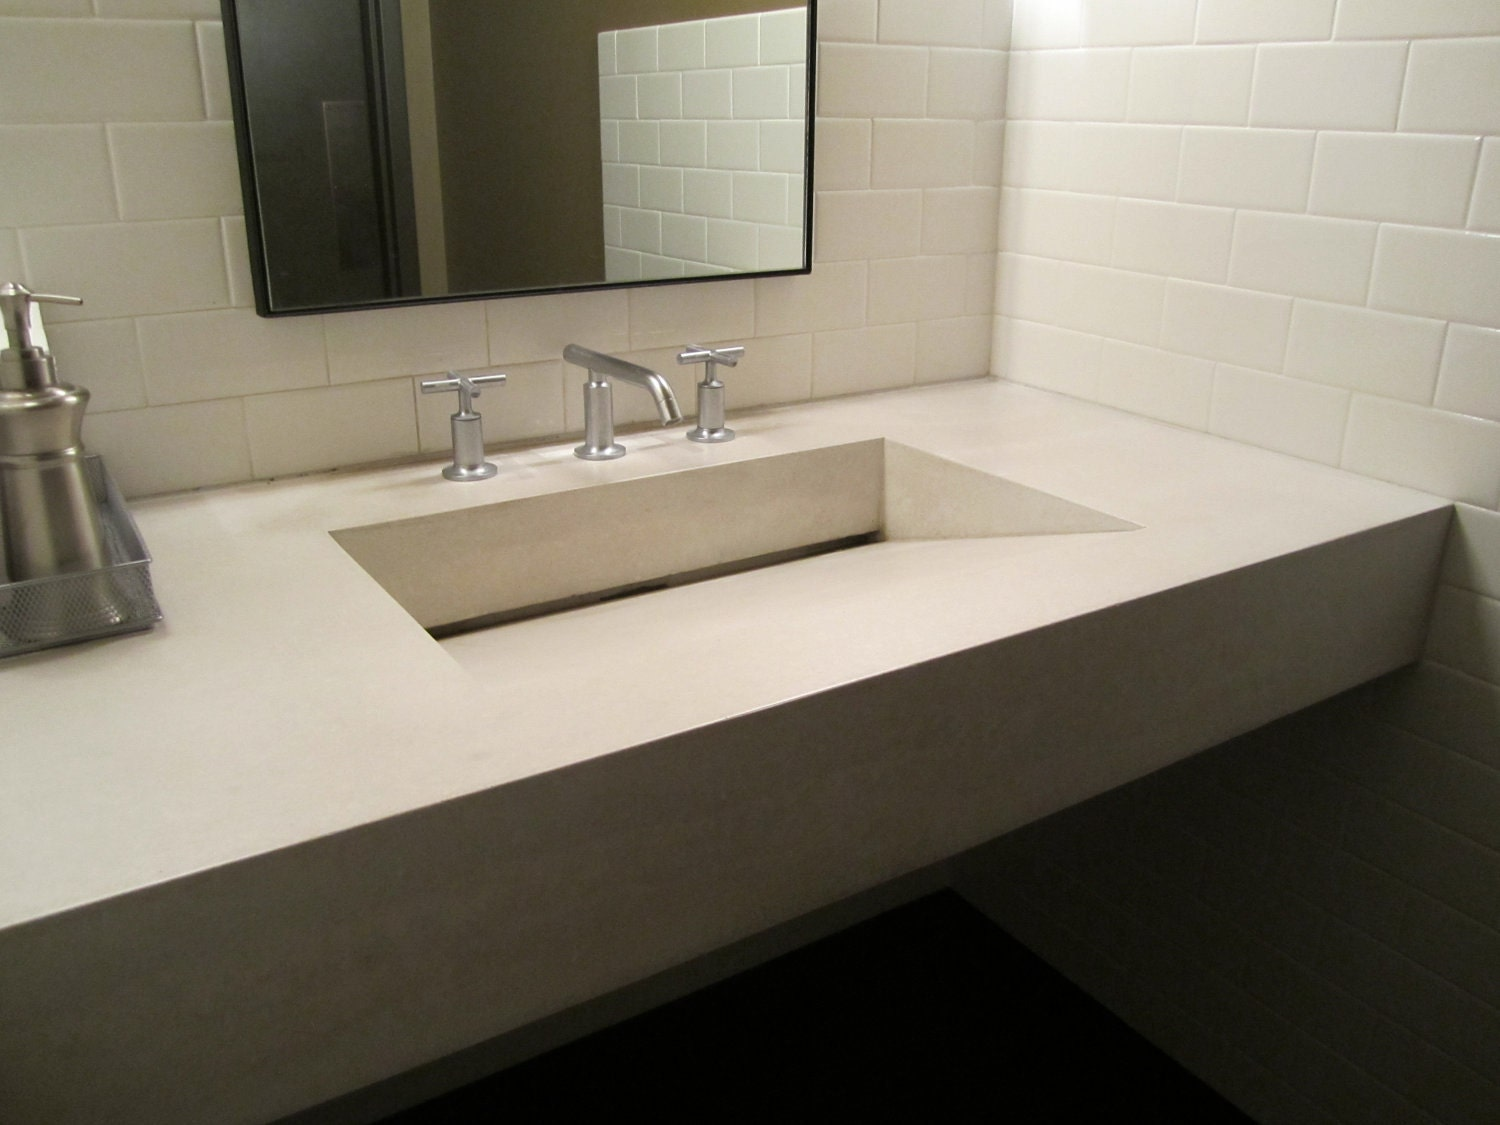 Floating Concrete Ramp Sink in Ivory